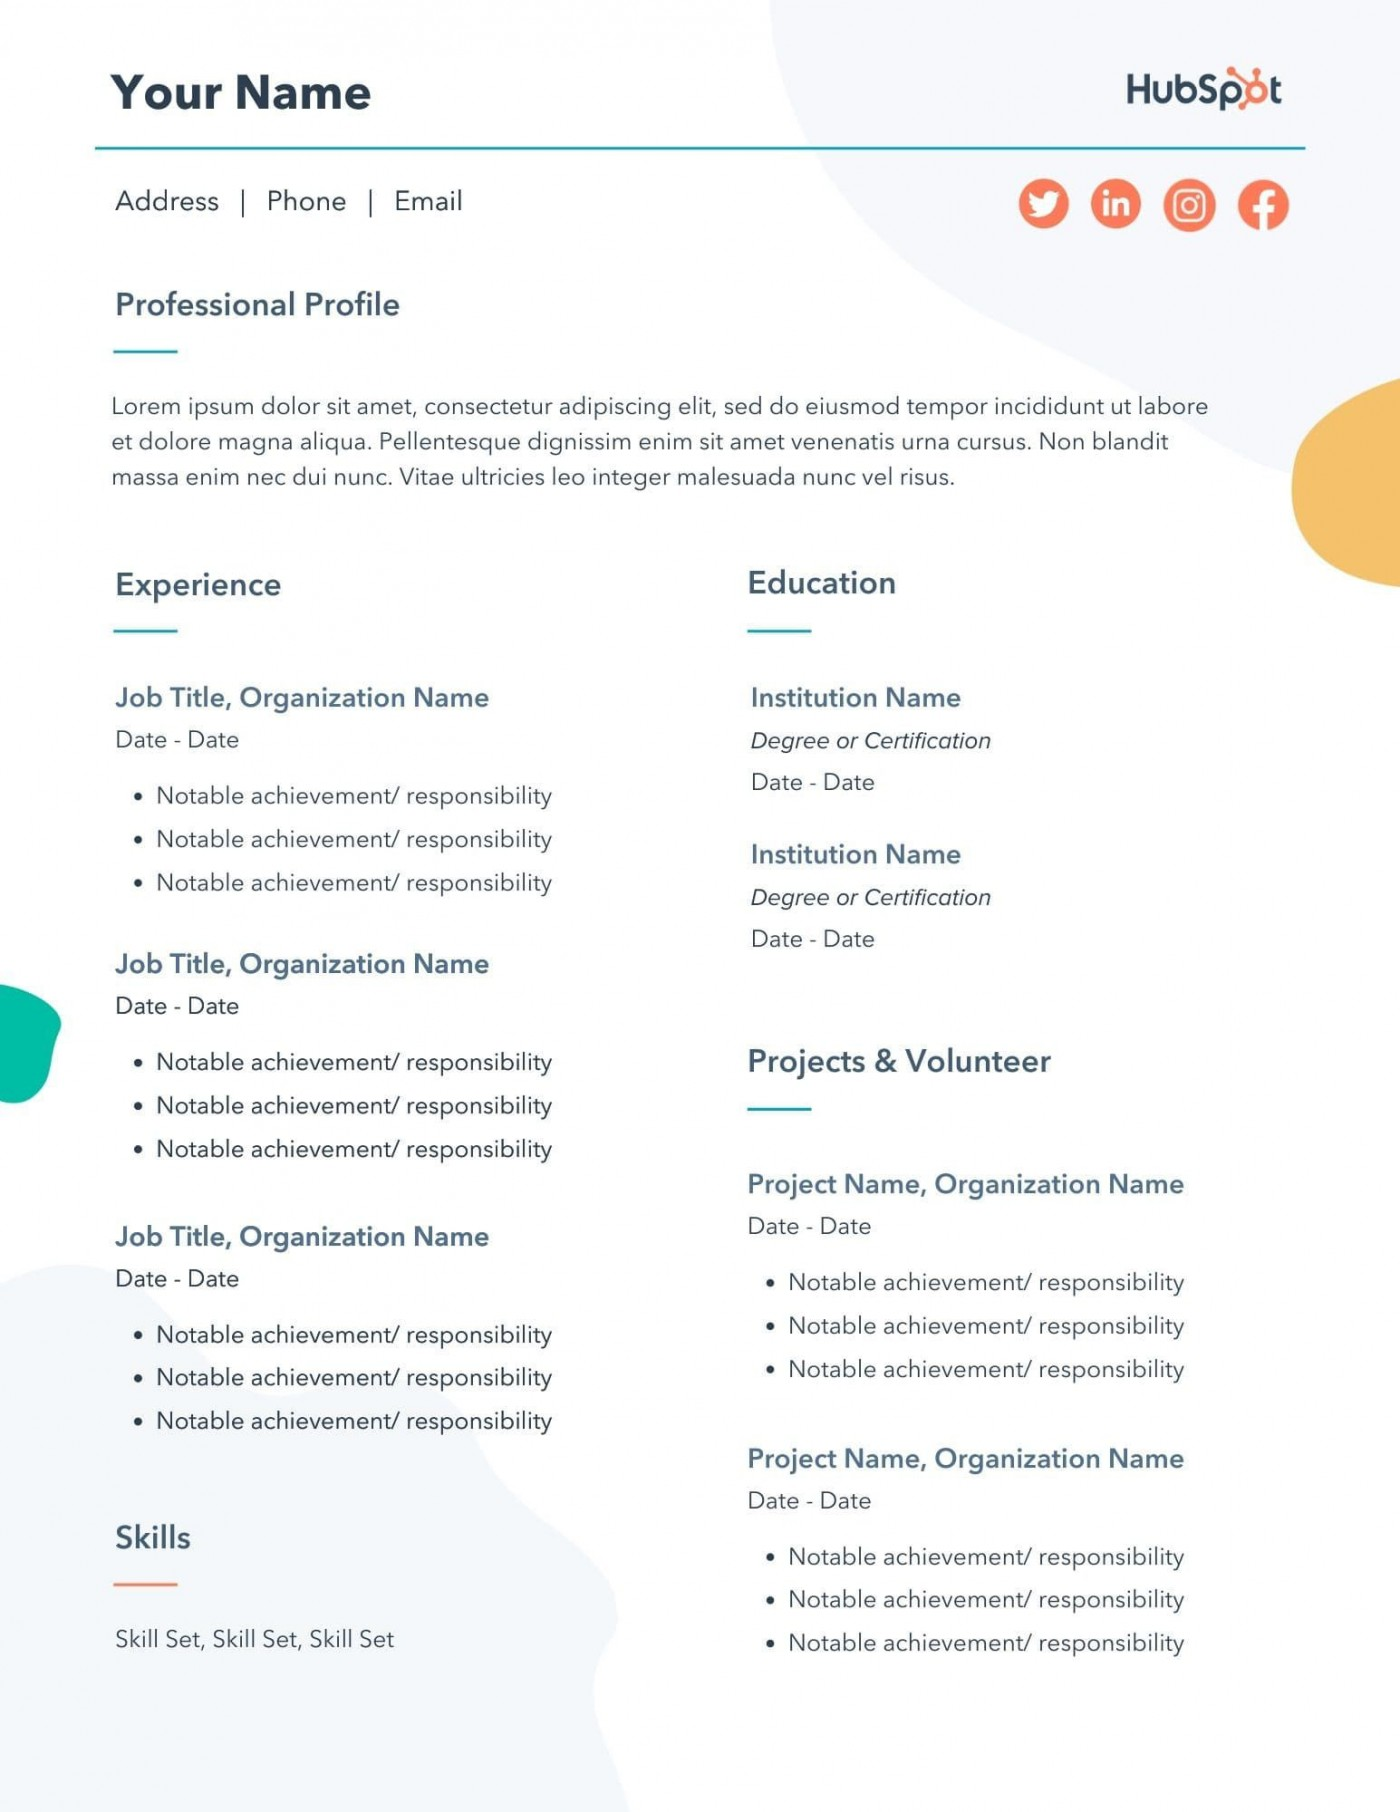 004 Top Resume Template For First Job Image  After College Sample Student Teenager1400